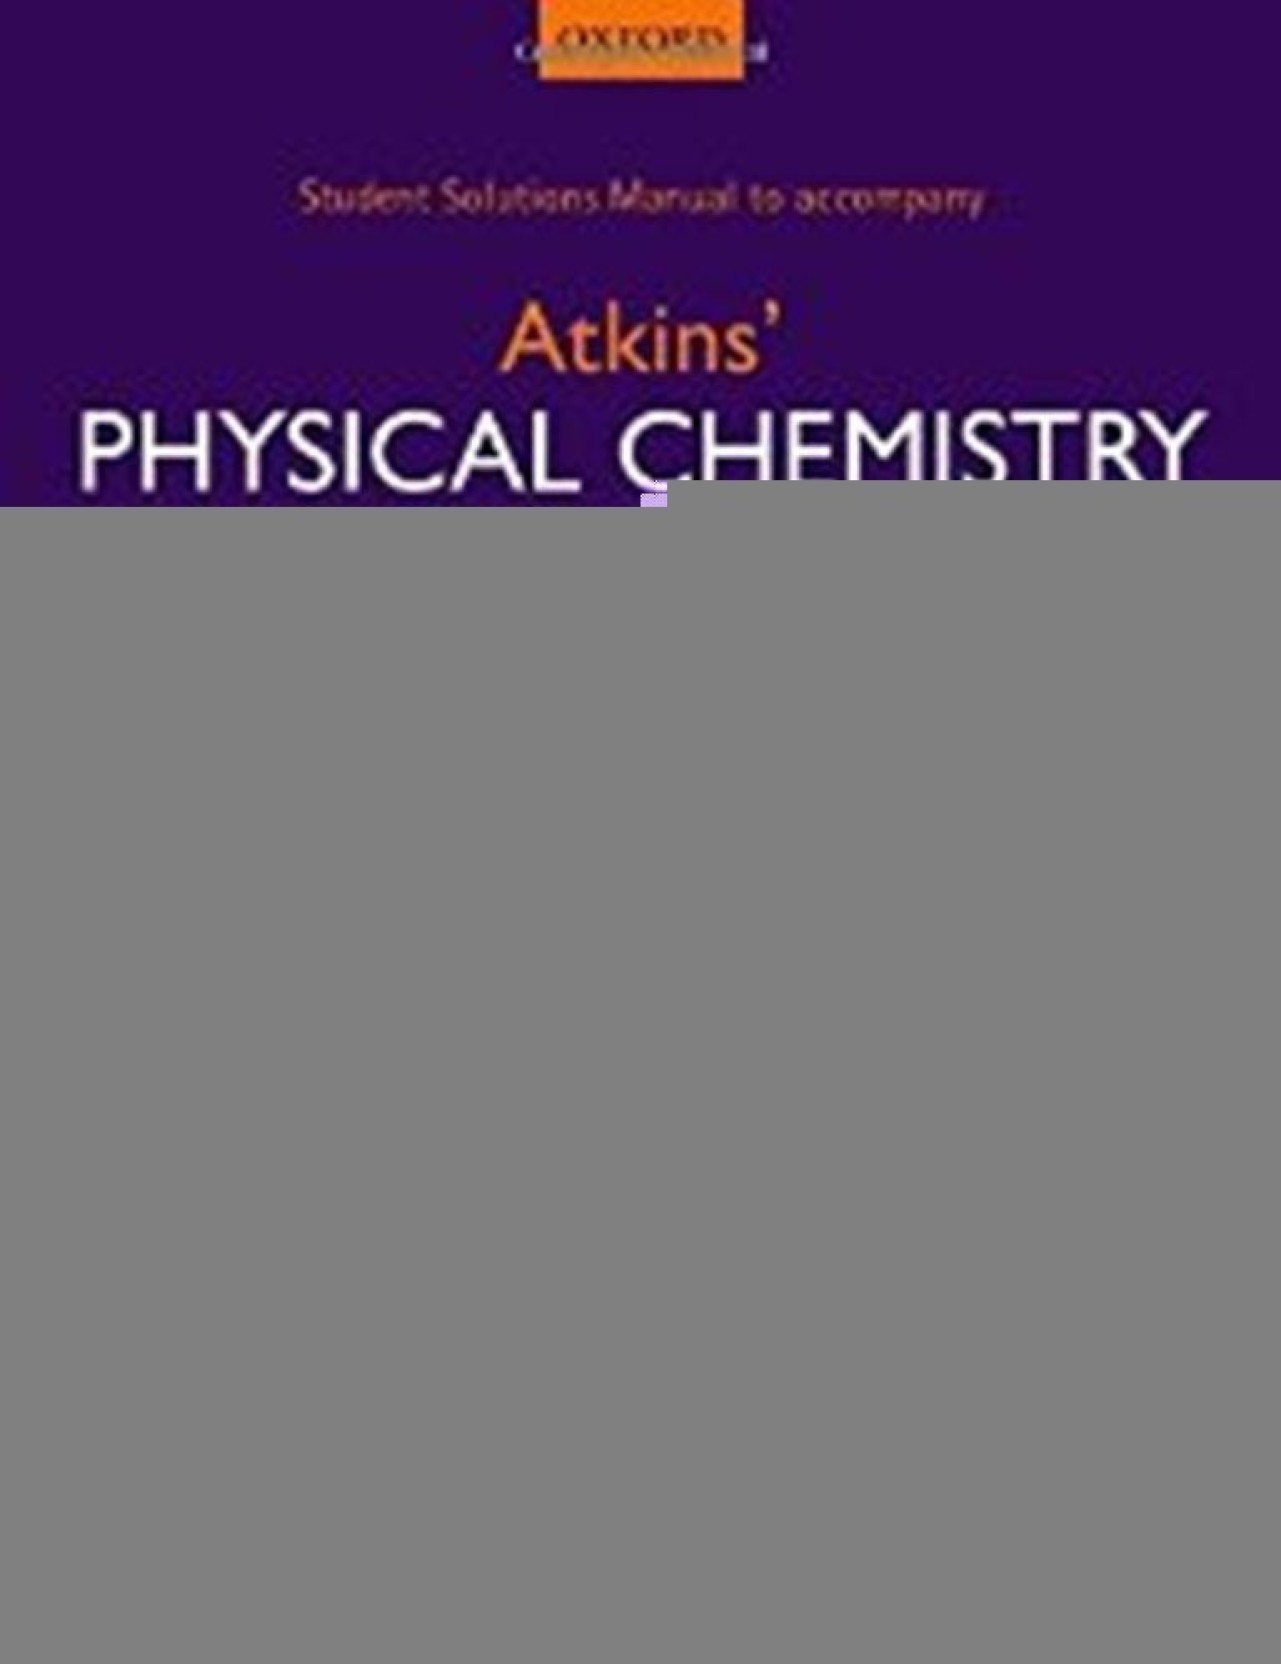 Student Solutions Manual to accompany Atkins' Physical Chemistry 10th  edition. ADD TO CART